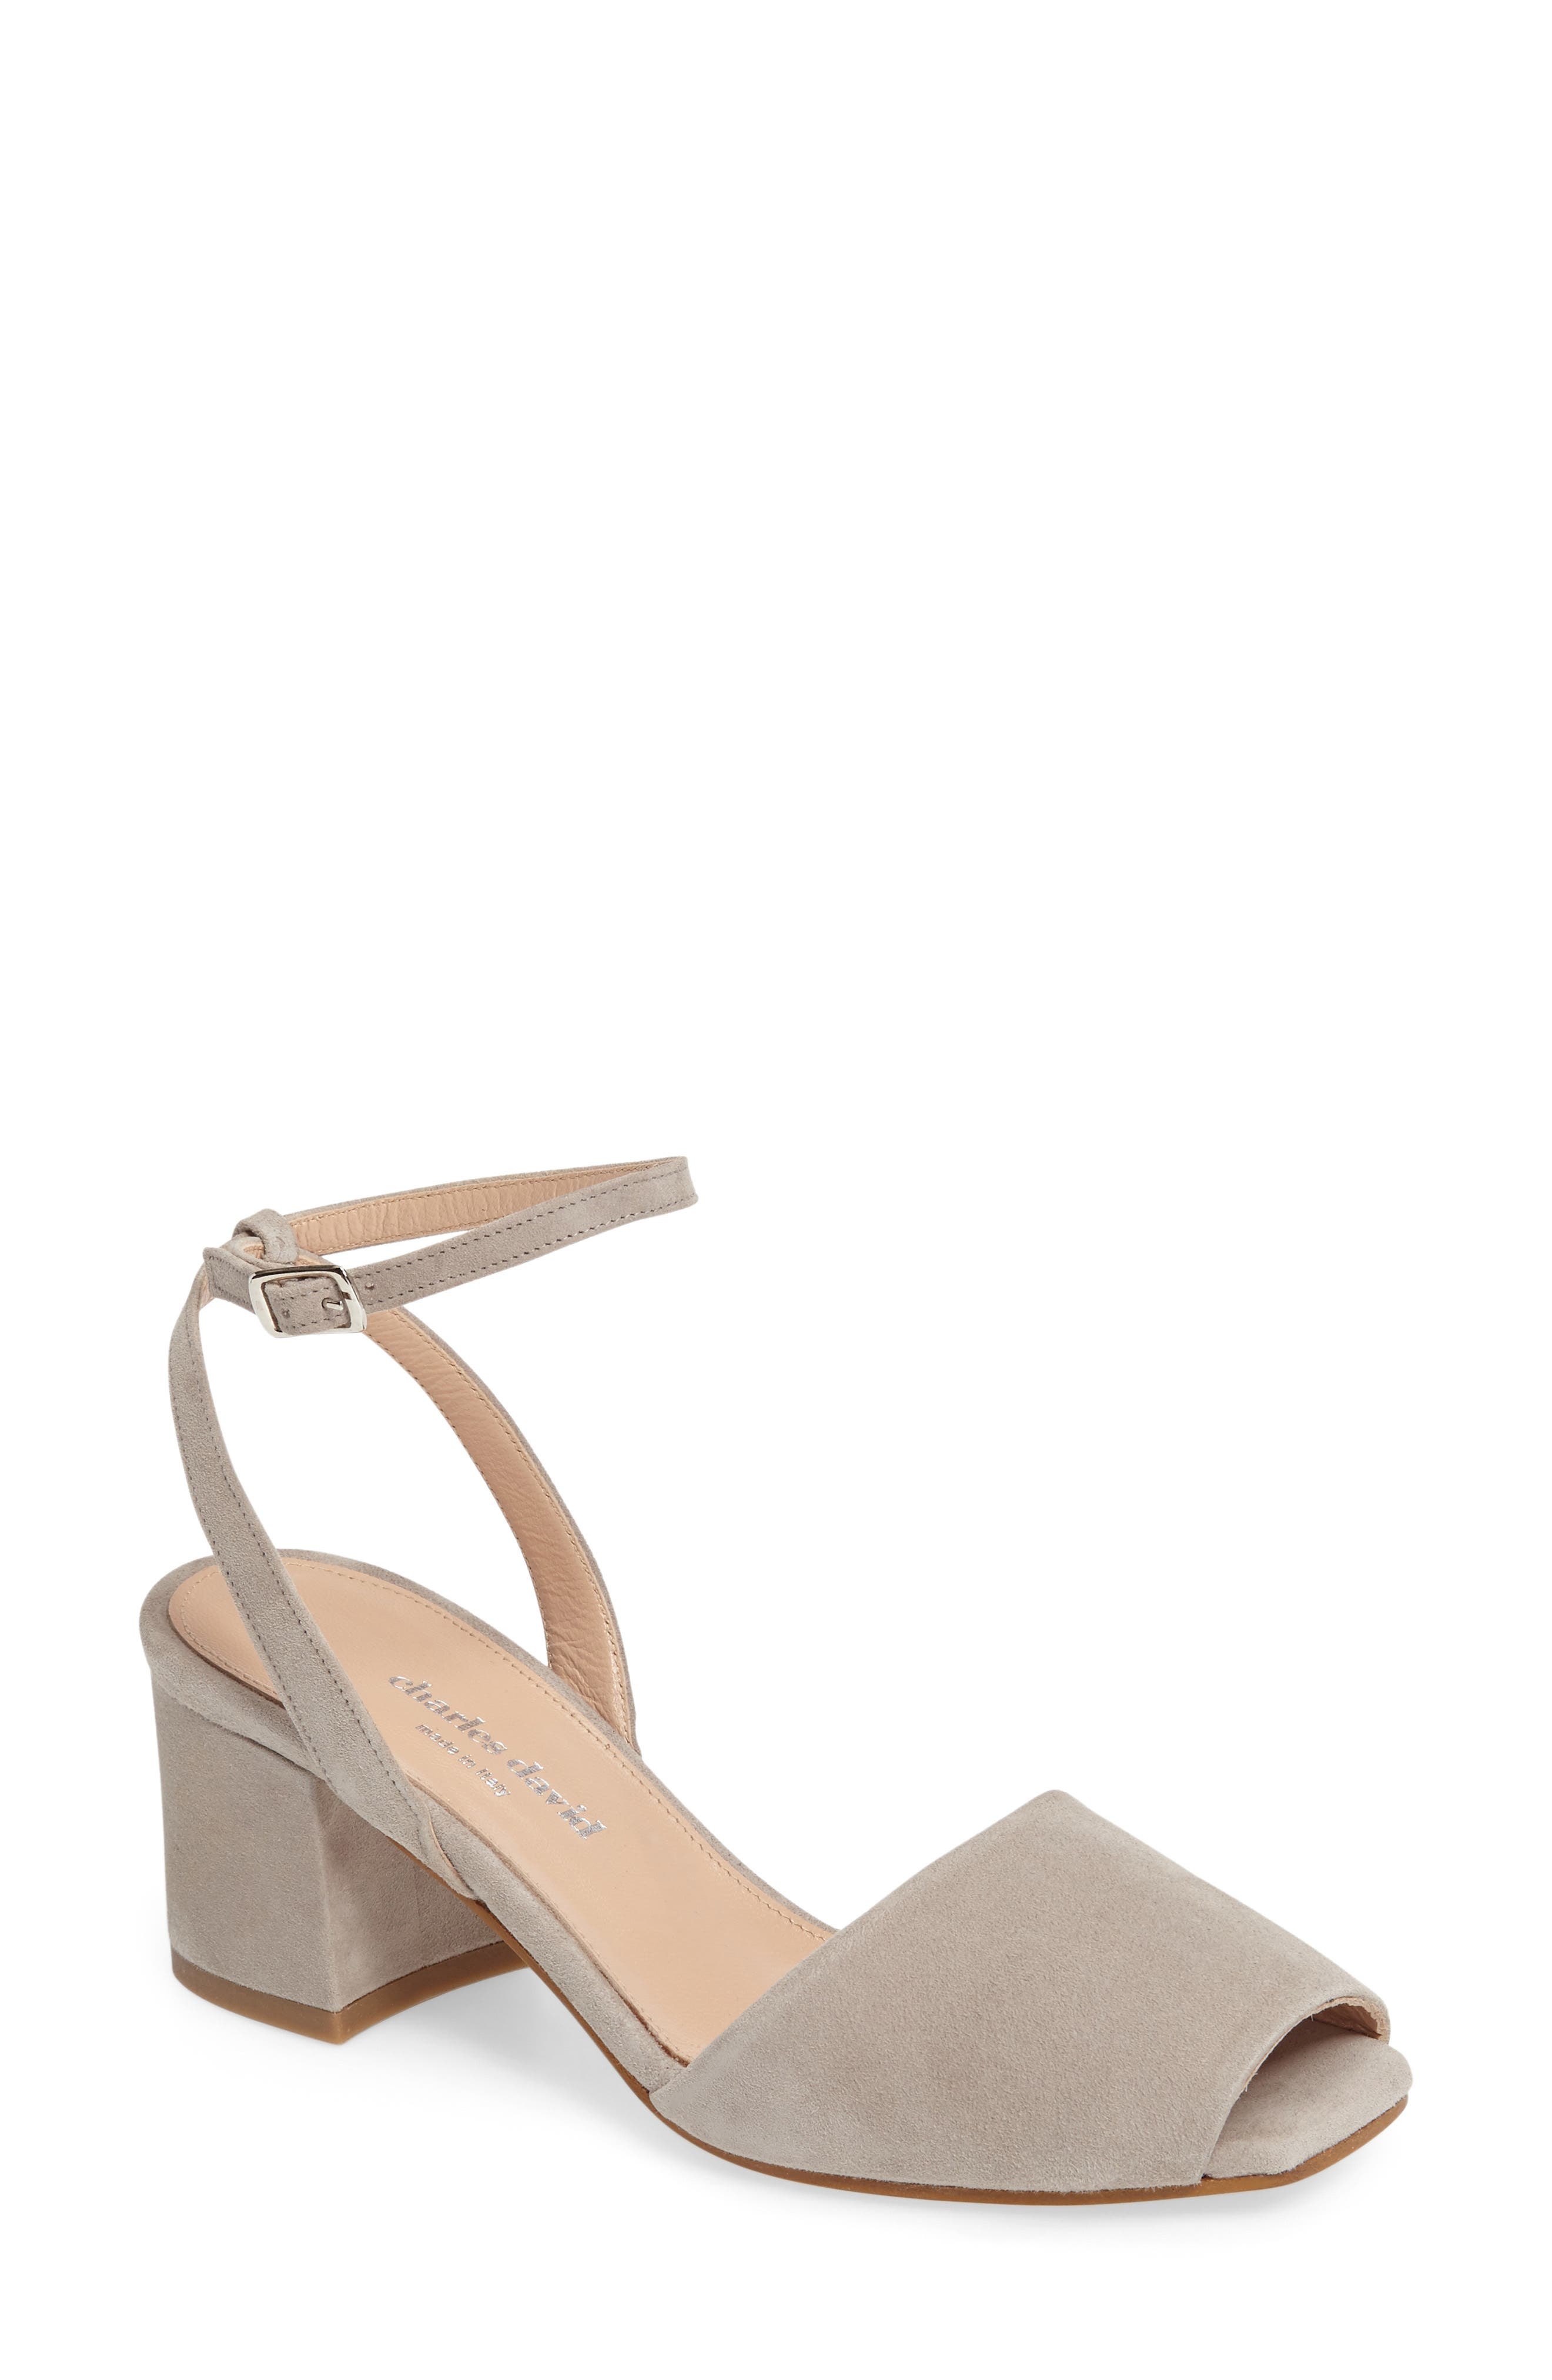 Main Image - Charles David Cube Sandal (Women)